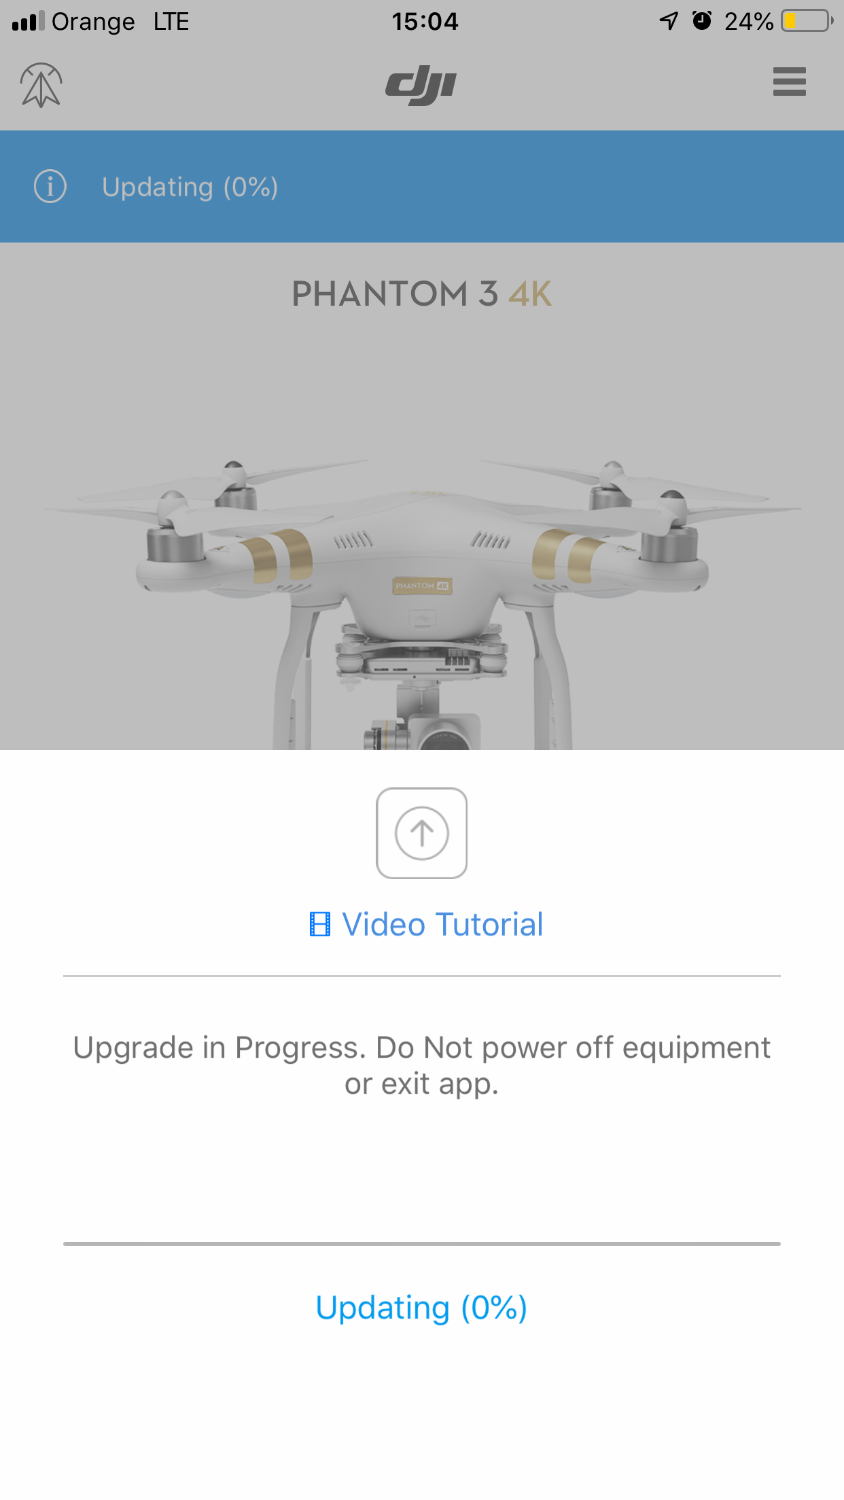 NO IMAGE TRANSMISSION SIGNAL (solved) | DJI FORUM